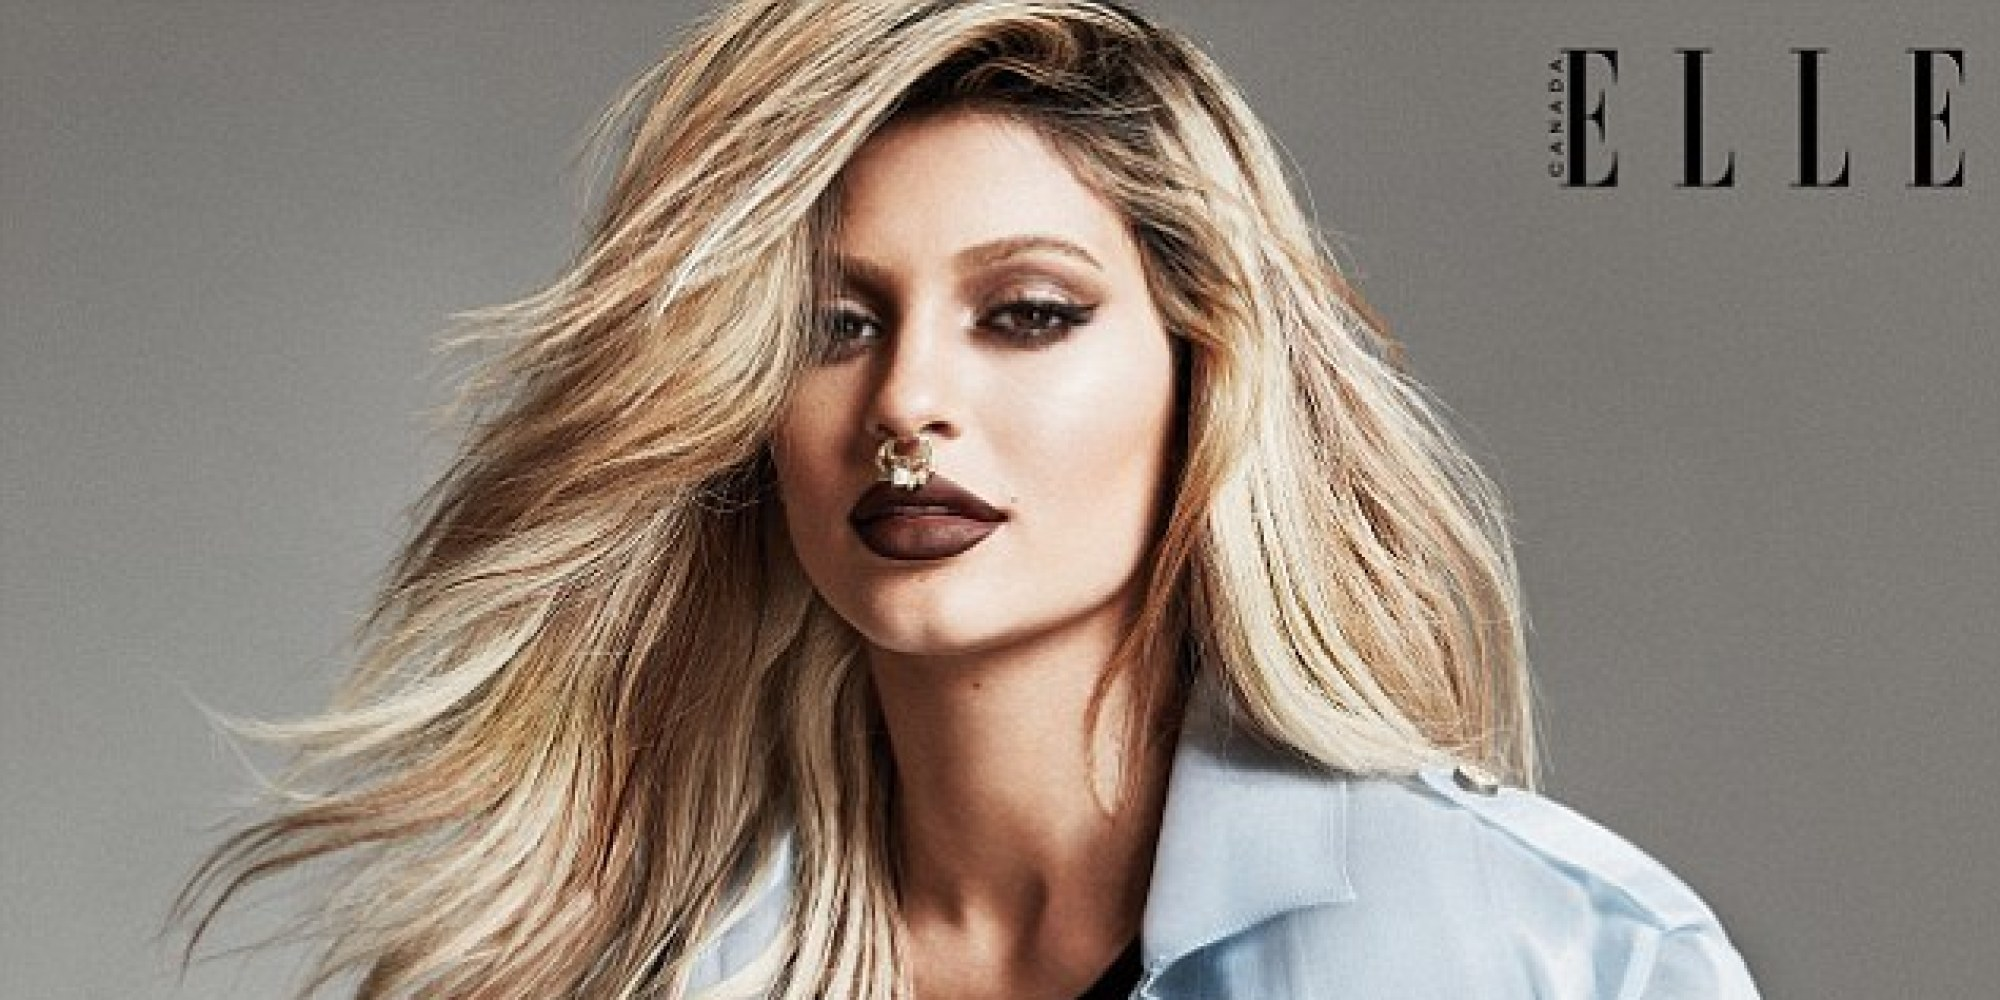 Kylie Jenner Elle Canada Cover Proves Septum Rings Are Here To Stay ...